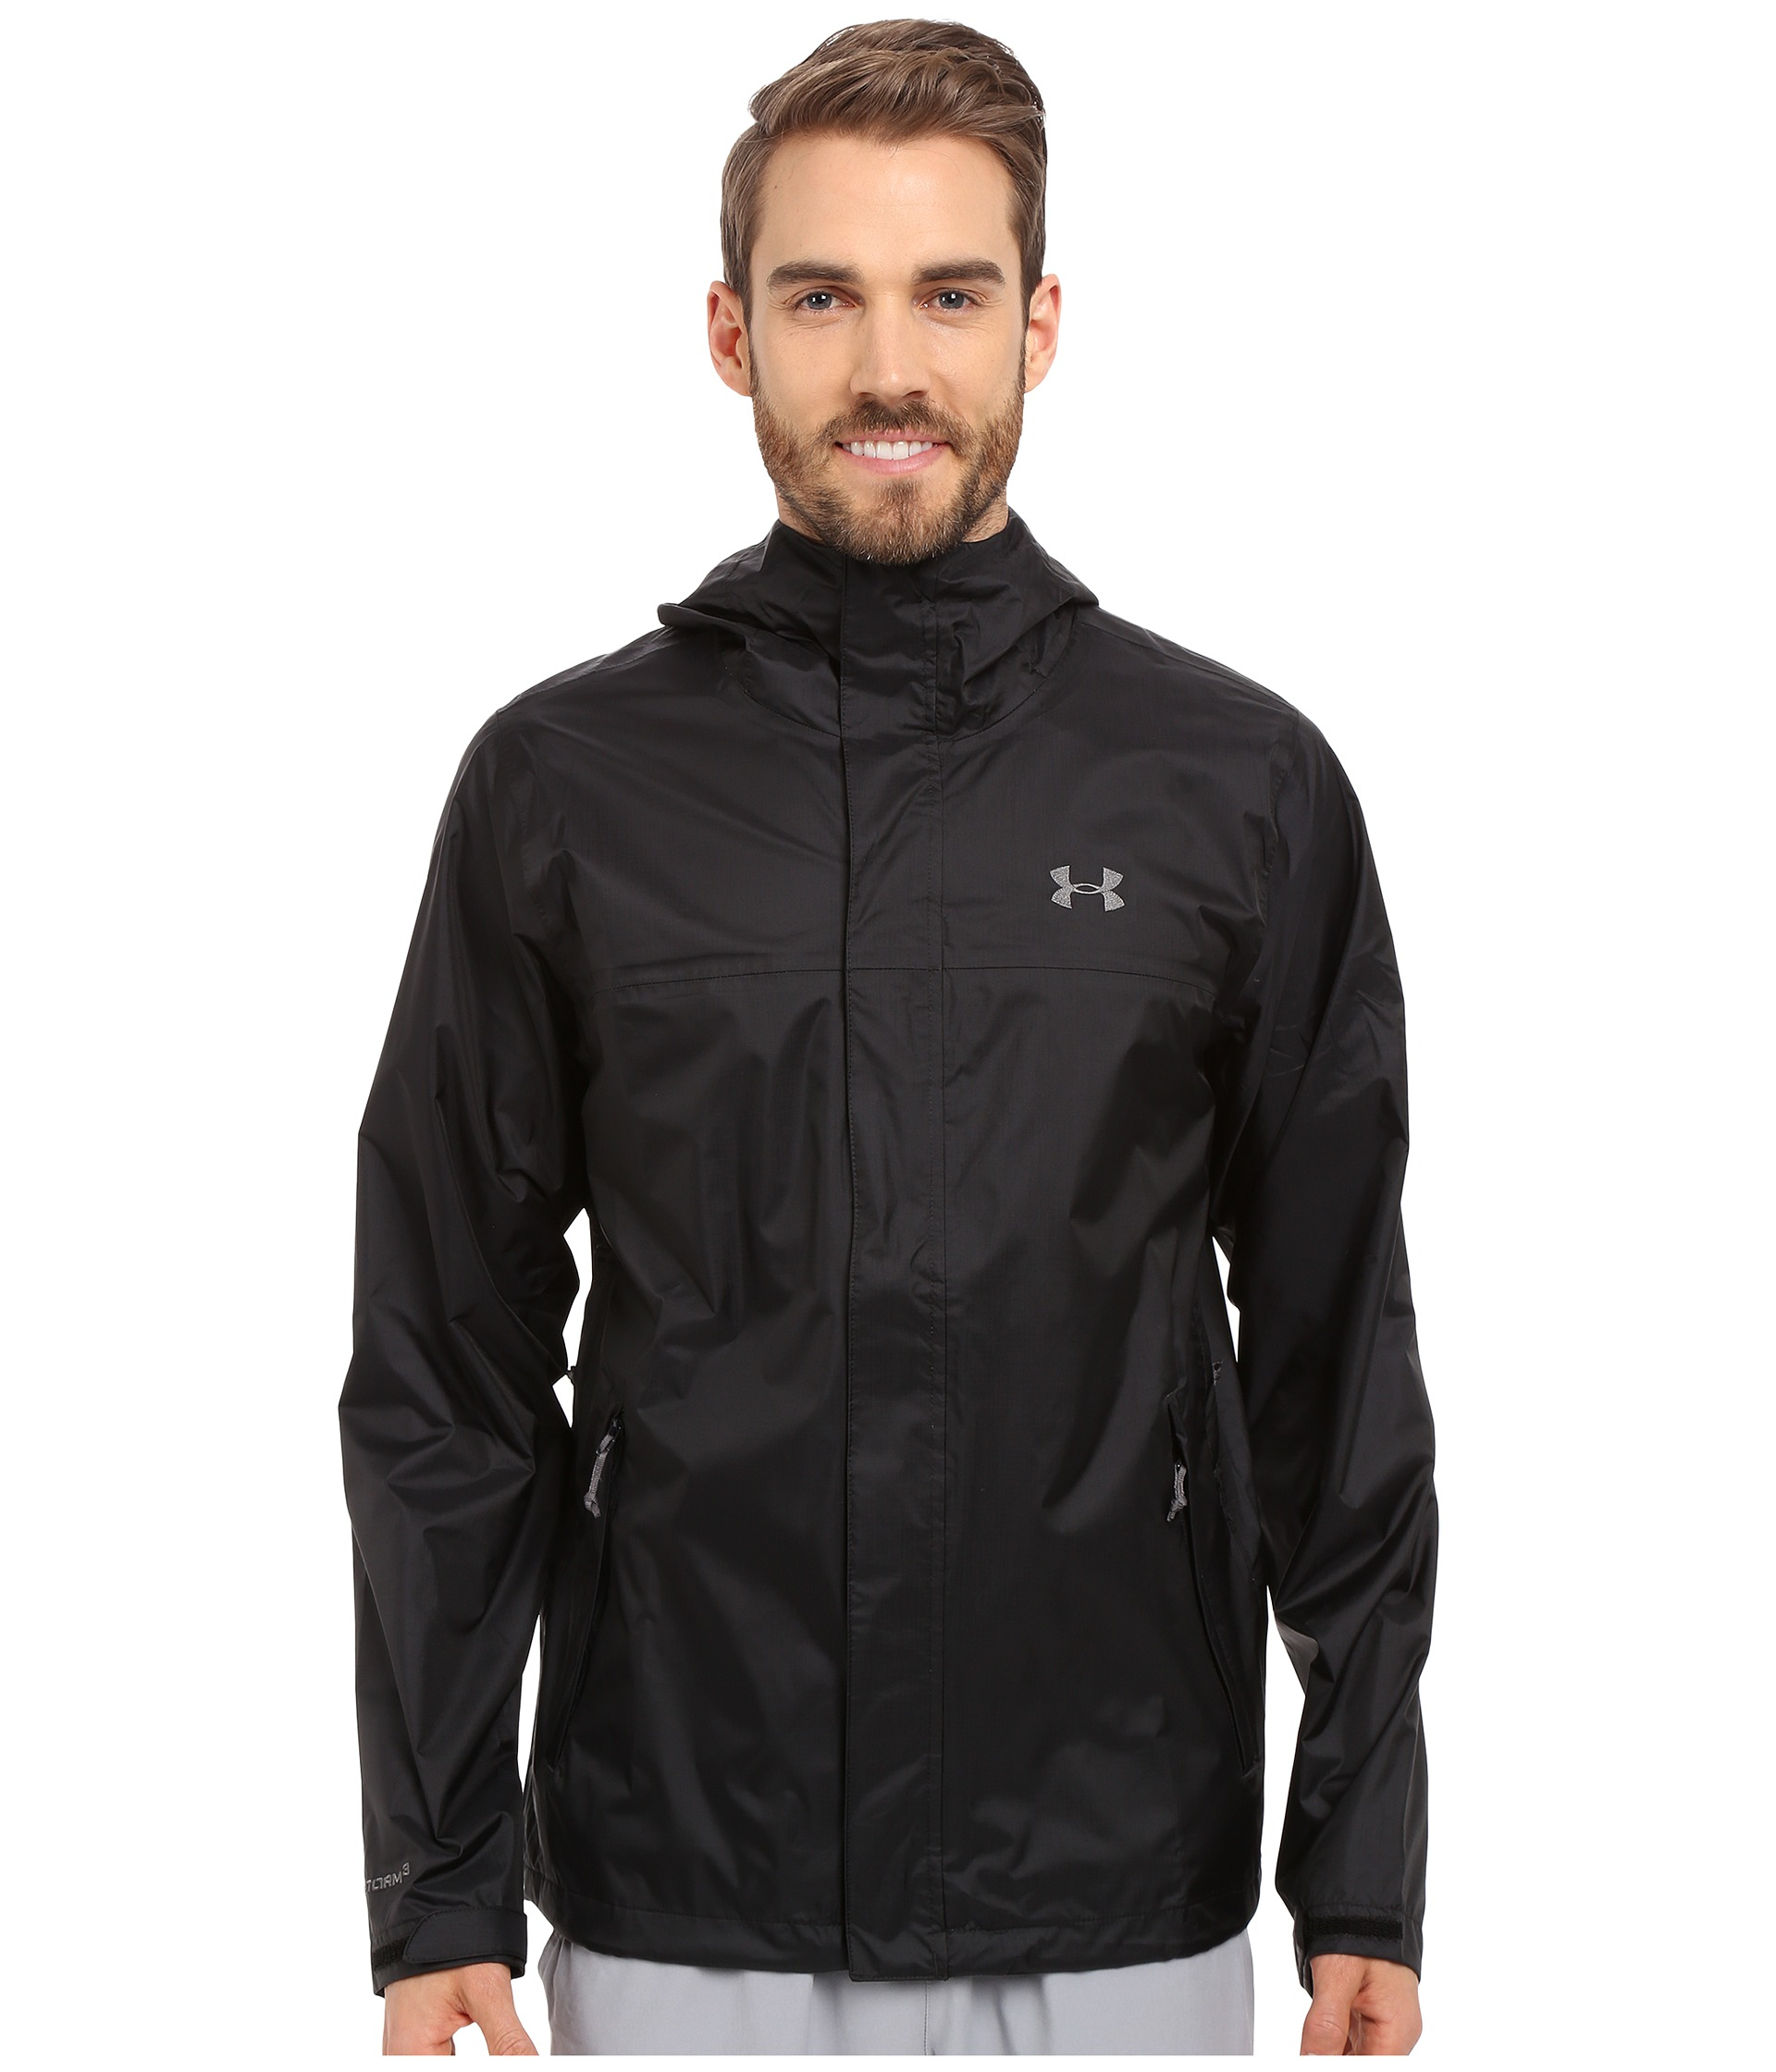 under armour jackets mens. gallery under armour jackets mens a